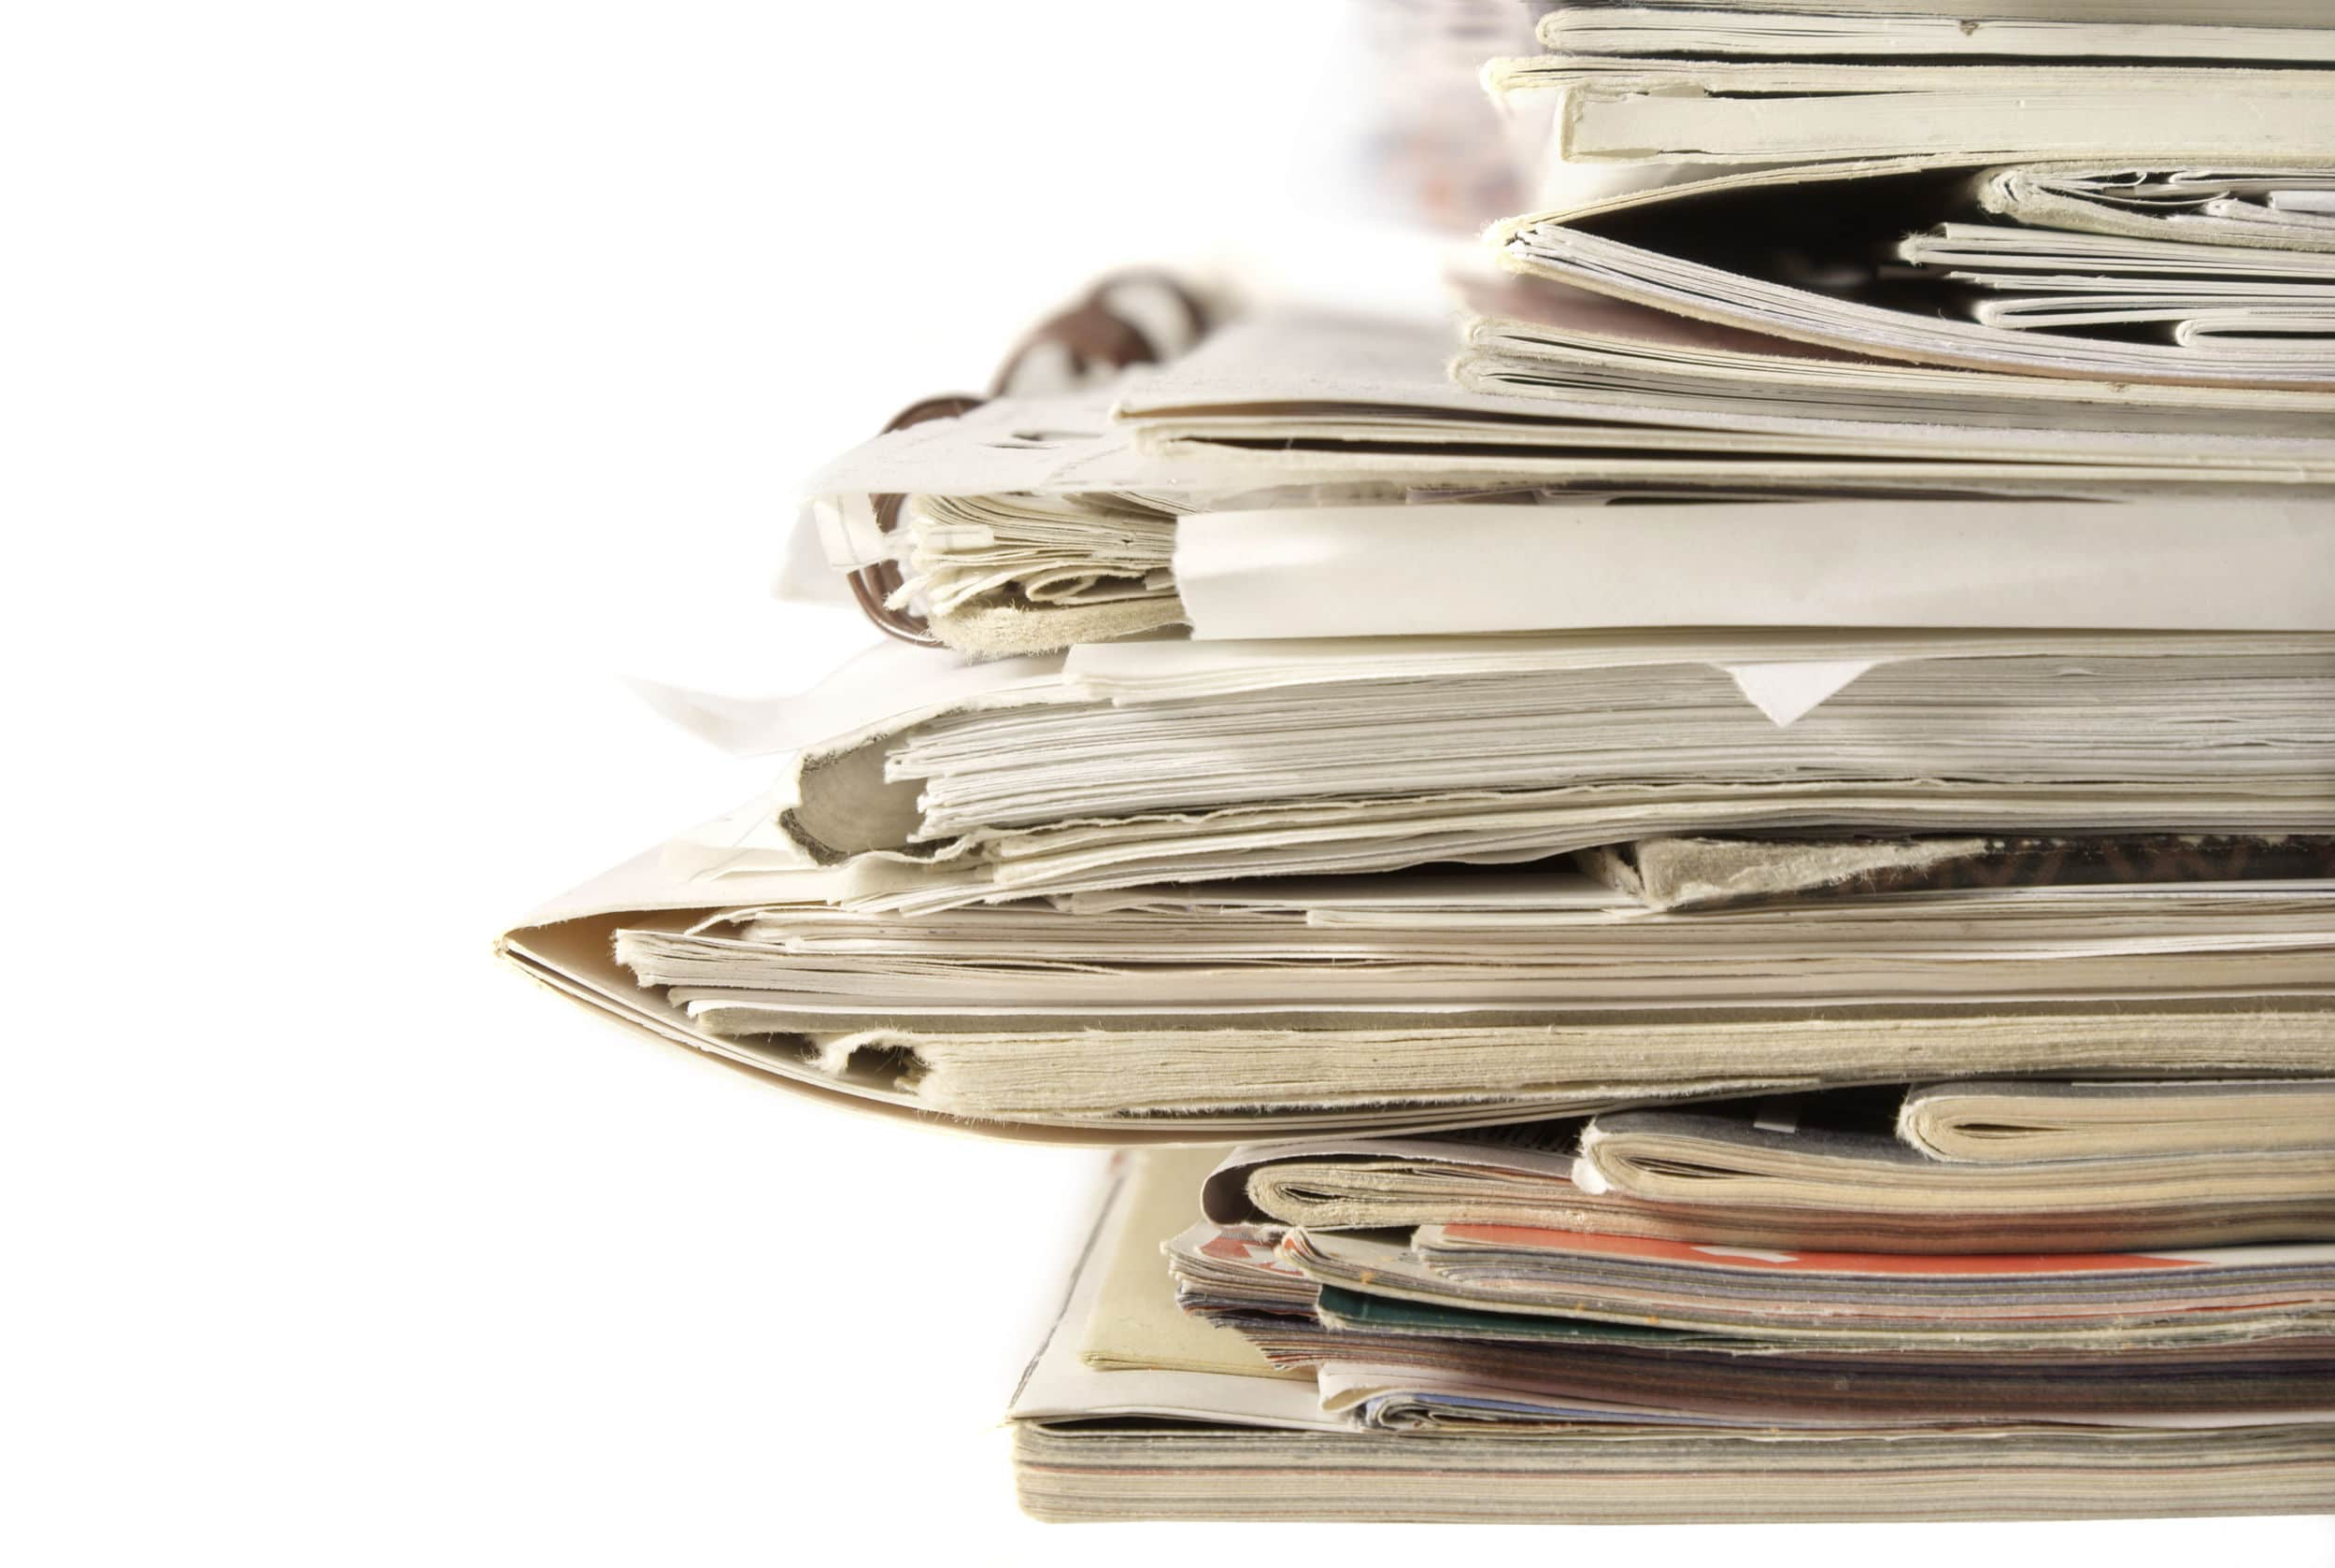 Too many papers can pile up and add clutter.